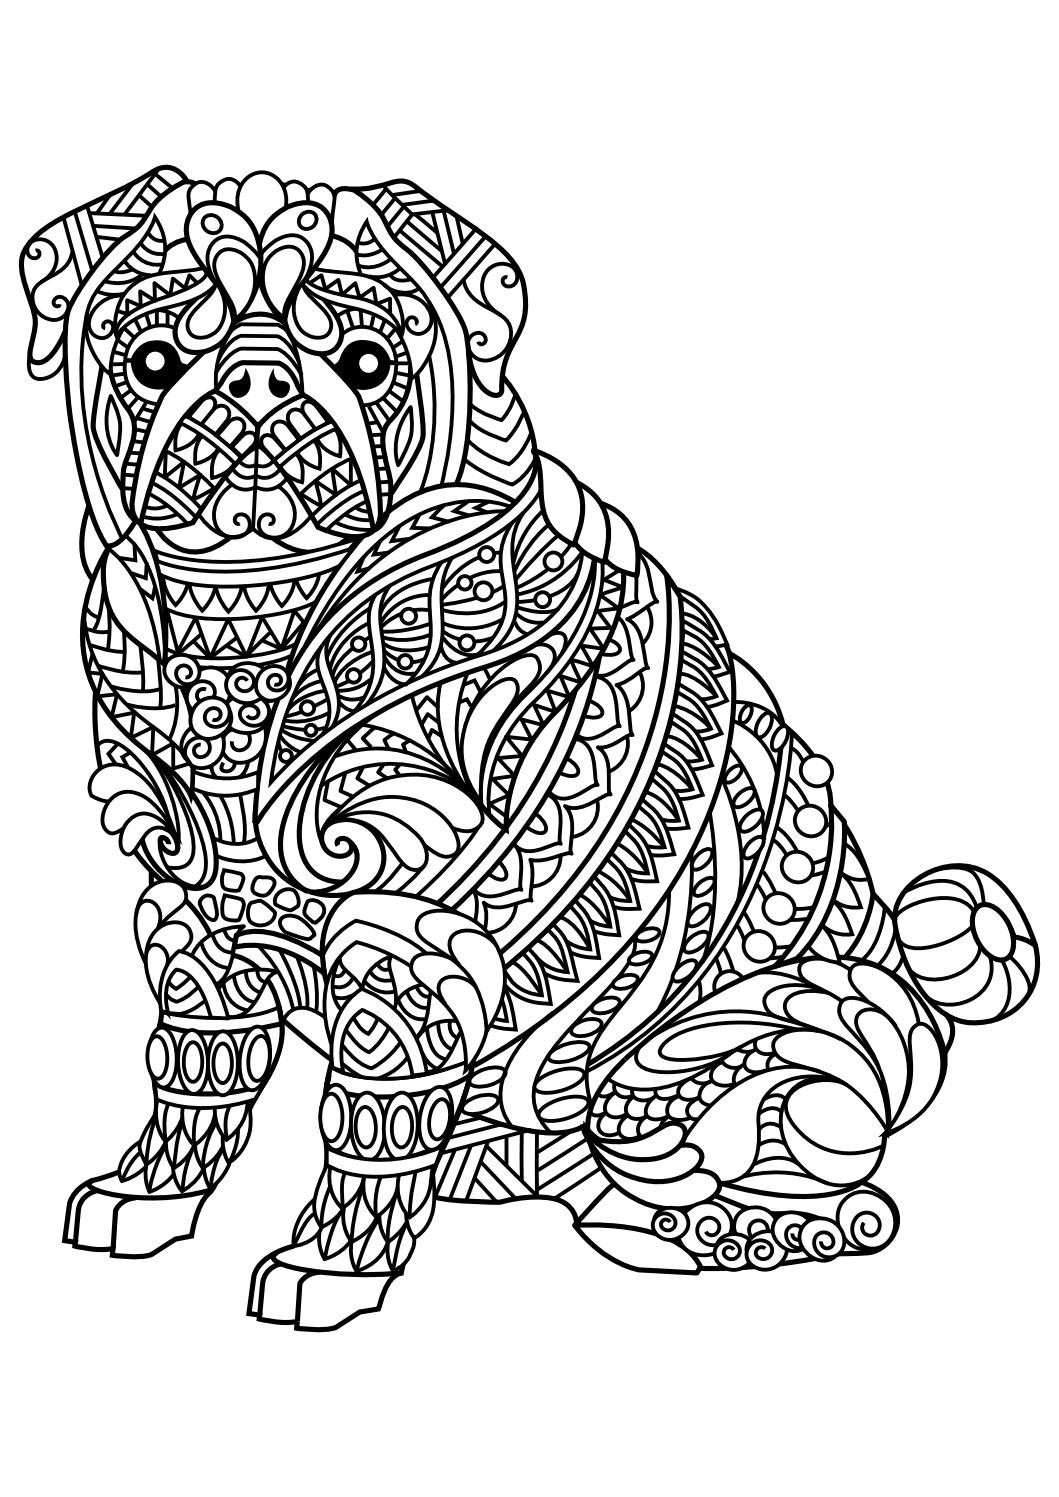 Hurricane Coloring Pages At Getdrawings